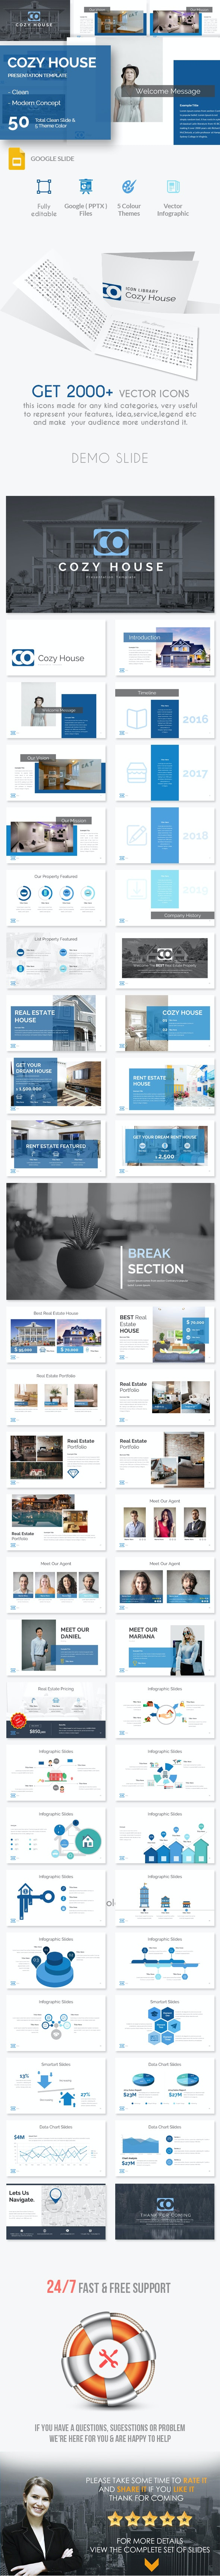 Cozy House Google Presentation Template - Google Slides Presentation Templates